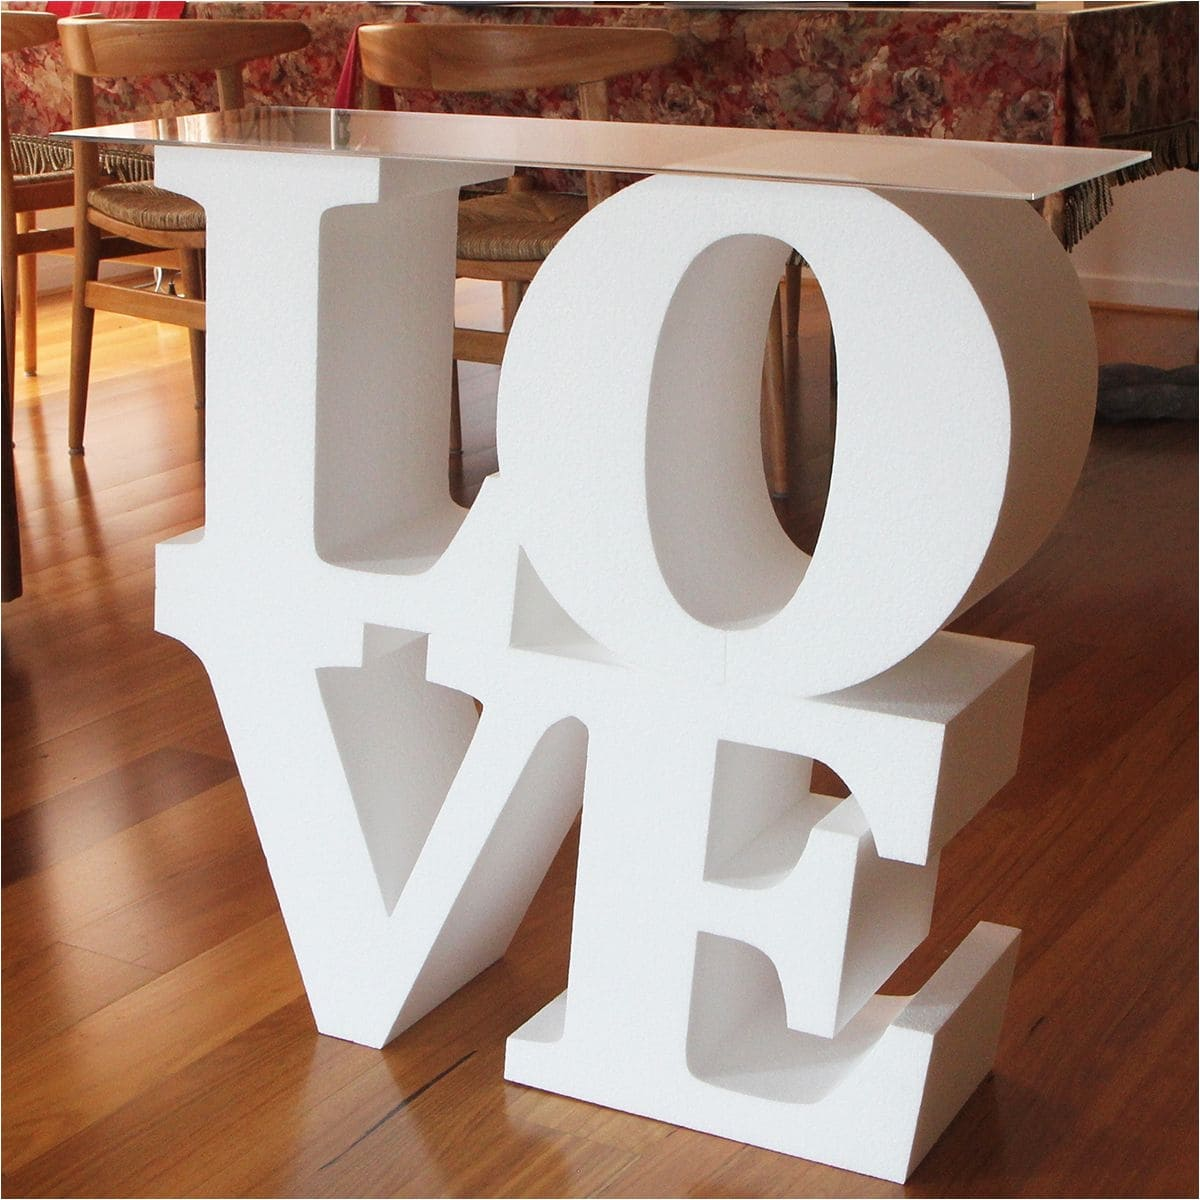 large-foam-letters-for-decorating-foam-letter-love-with-table-top-letters-pinterest-foam-letters-of-large-foam-letters-for-decorating